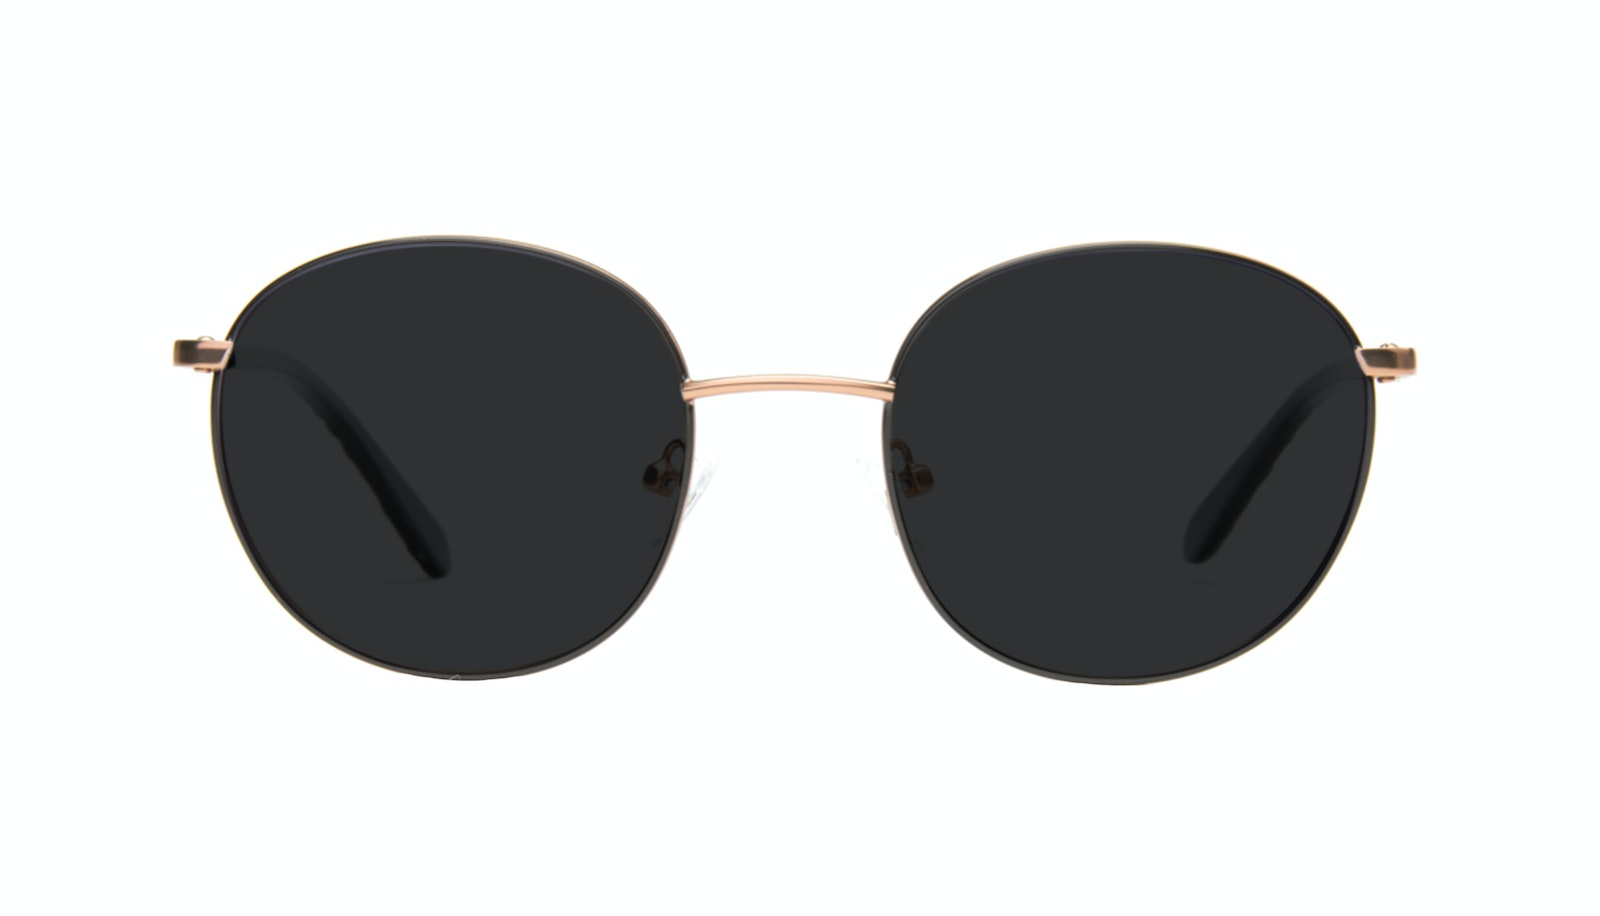 Affordable Fashion Glasses Round Sunglasses Women Joy Black Copper